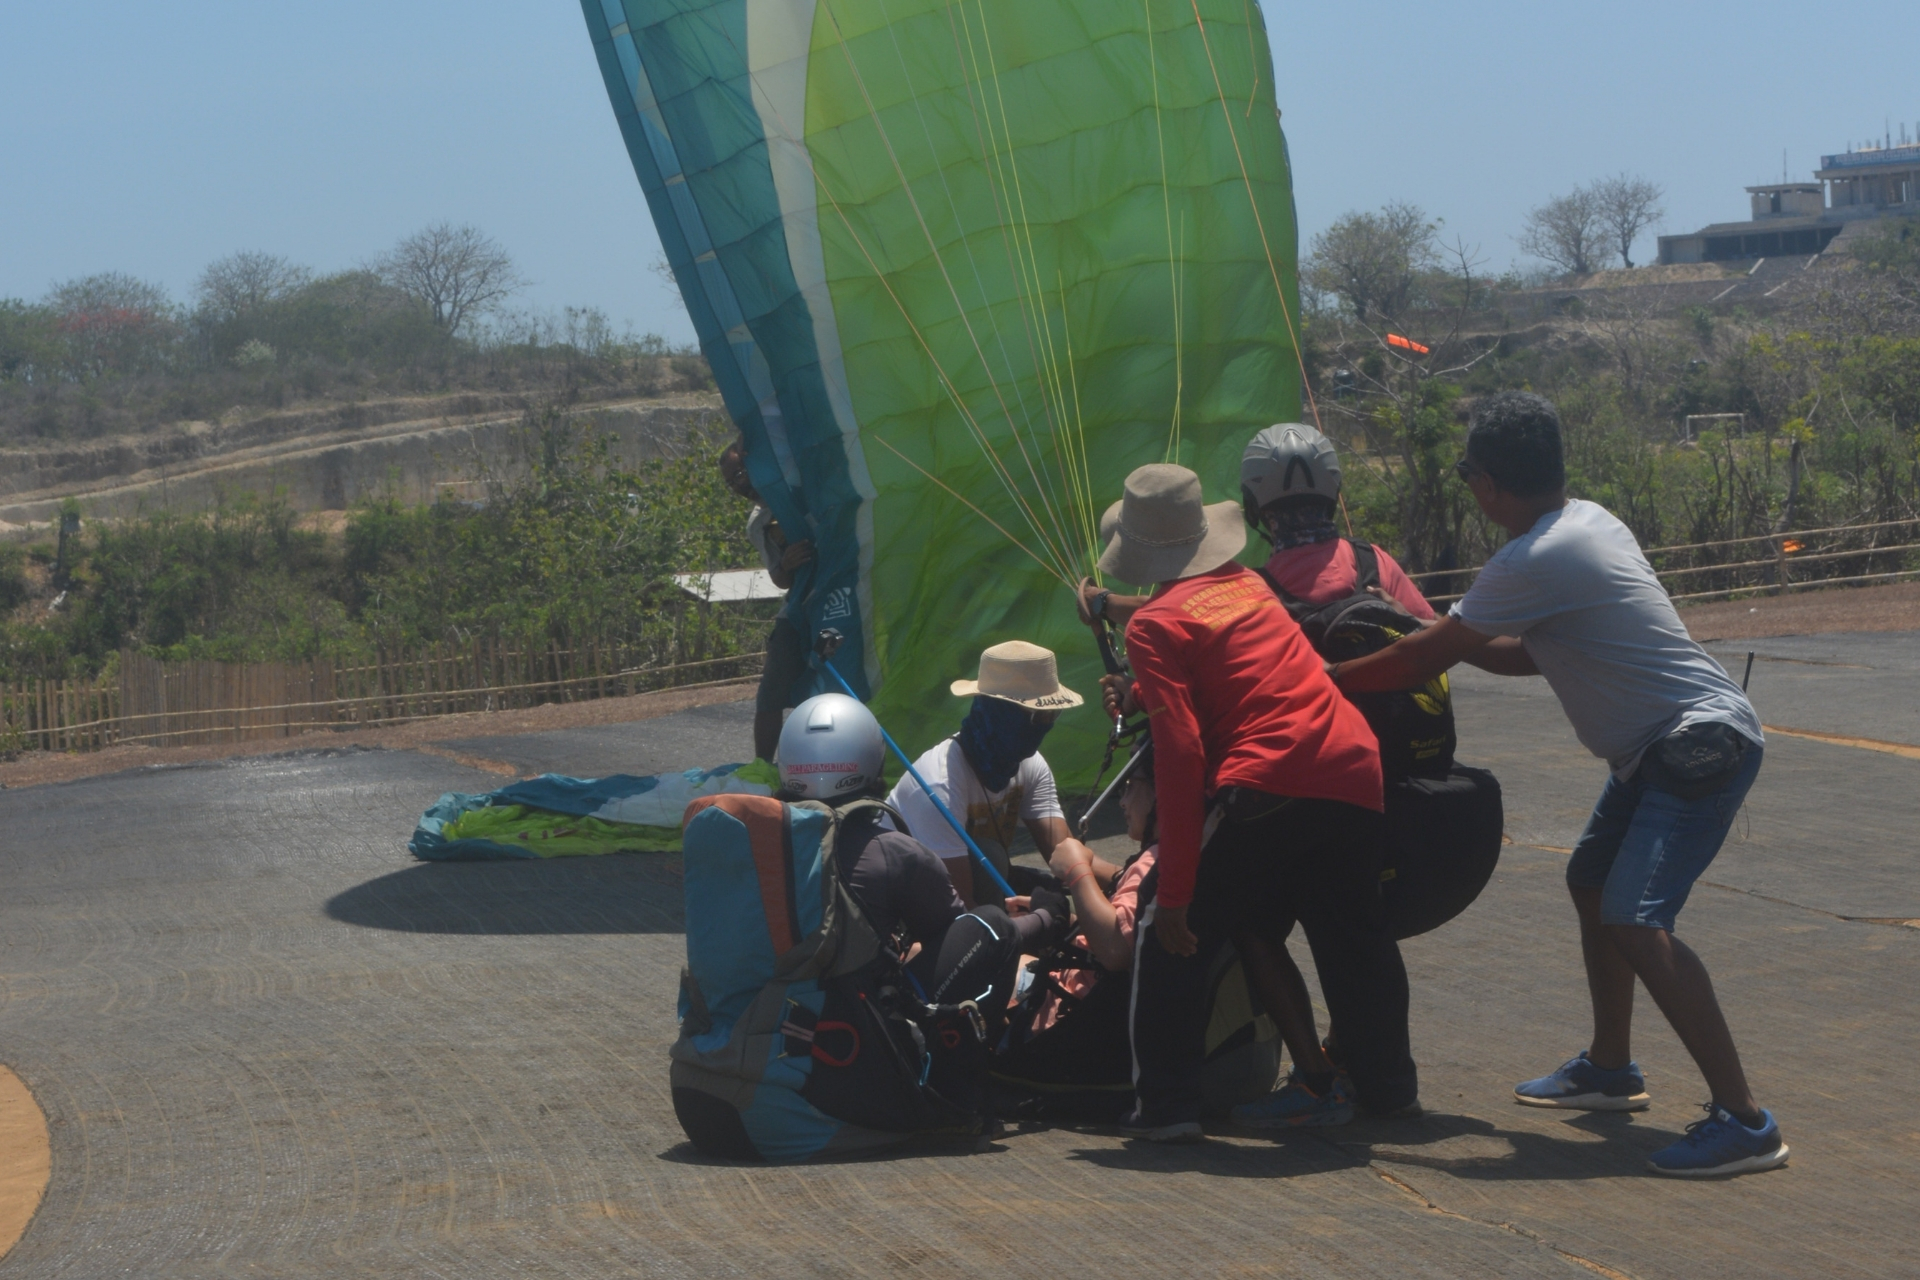 You are ready to do the Paragliding Adventure Activity Tour in Bali Paragliding